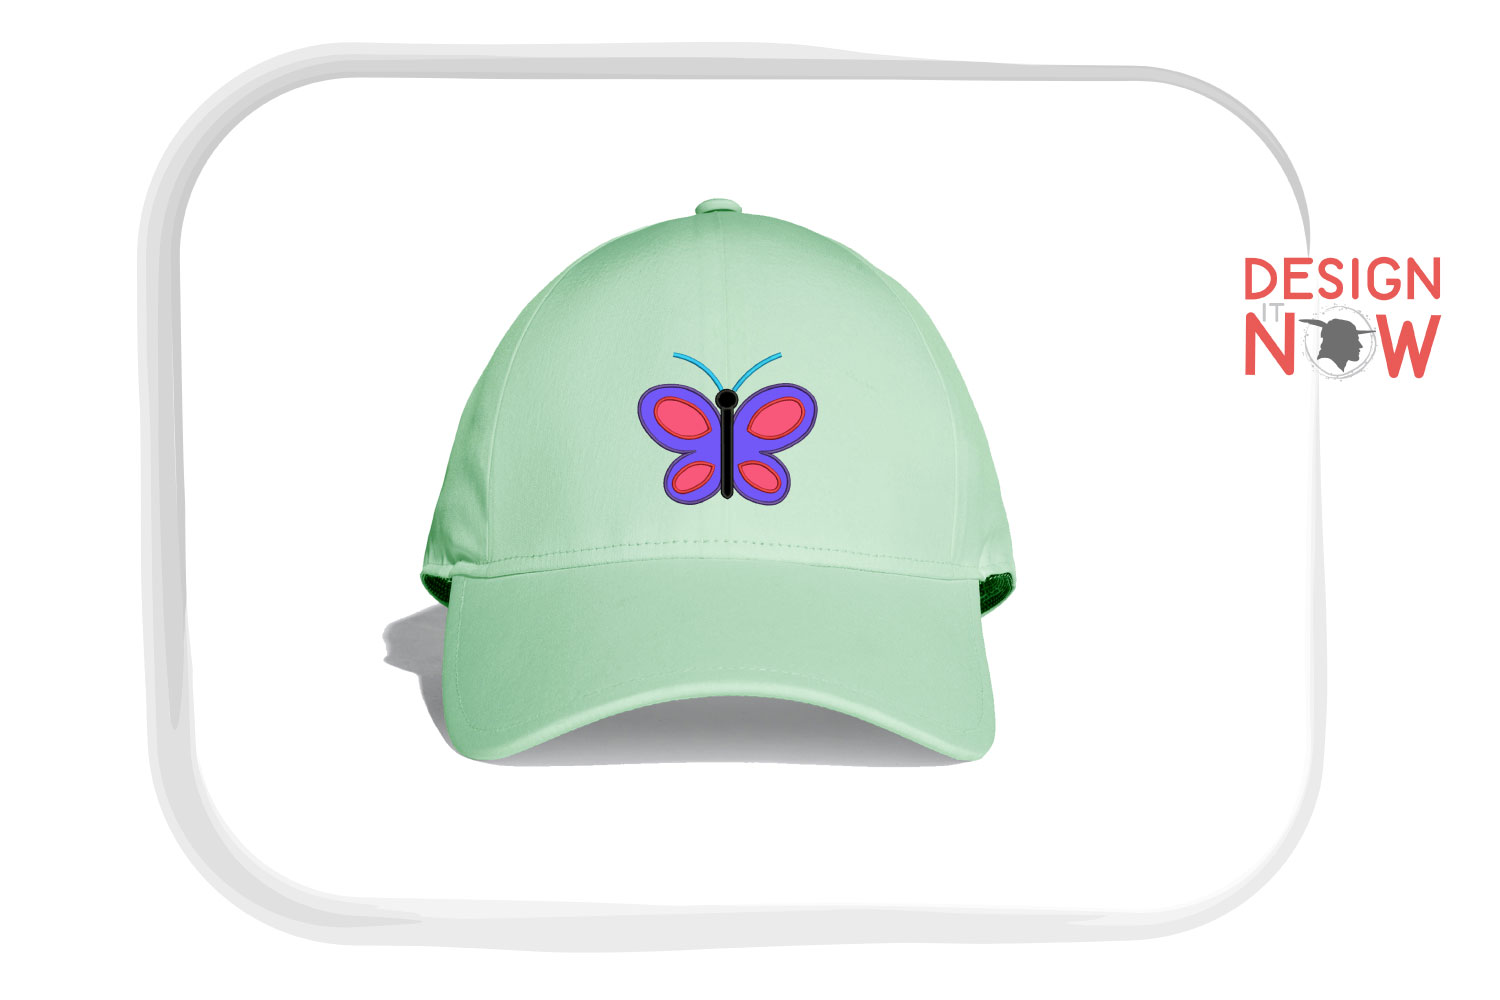 Butterfly Applique Design, Butterfly Embroidery, Handmade example image 3